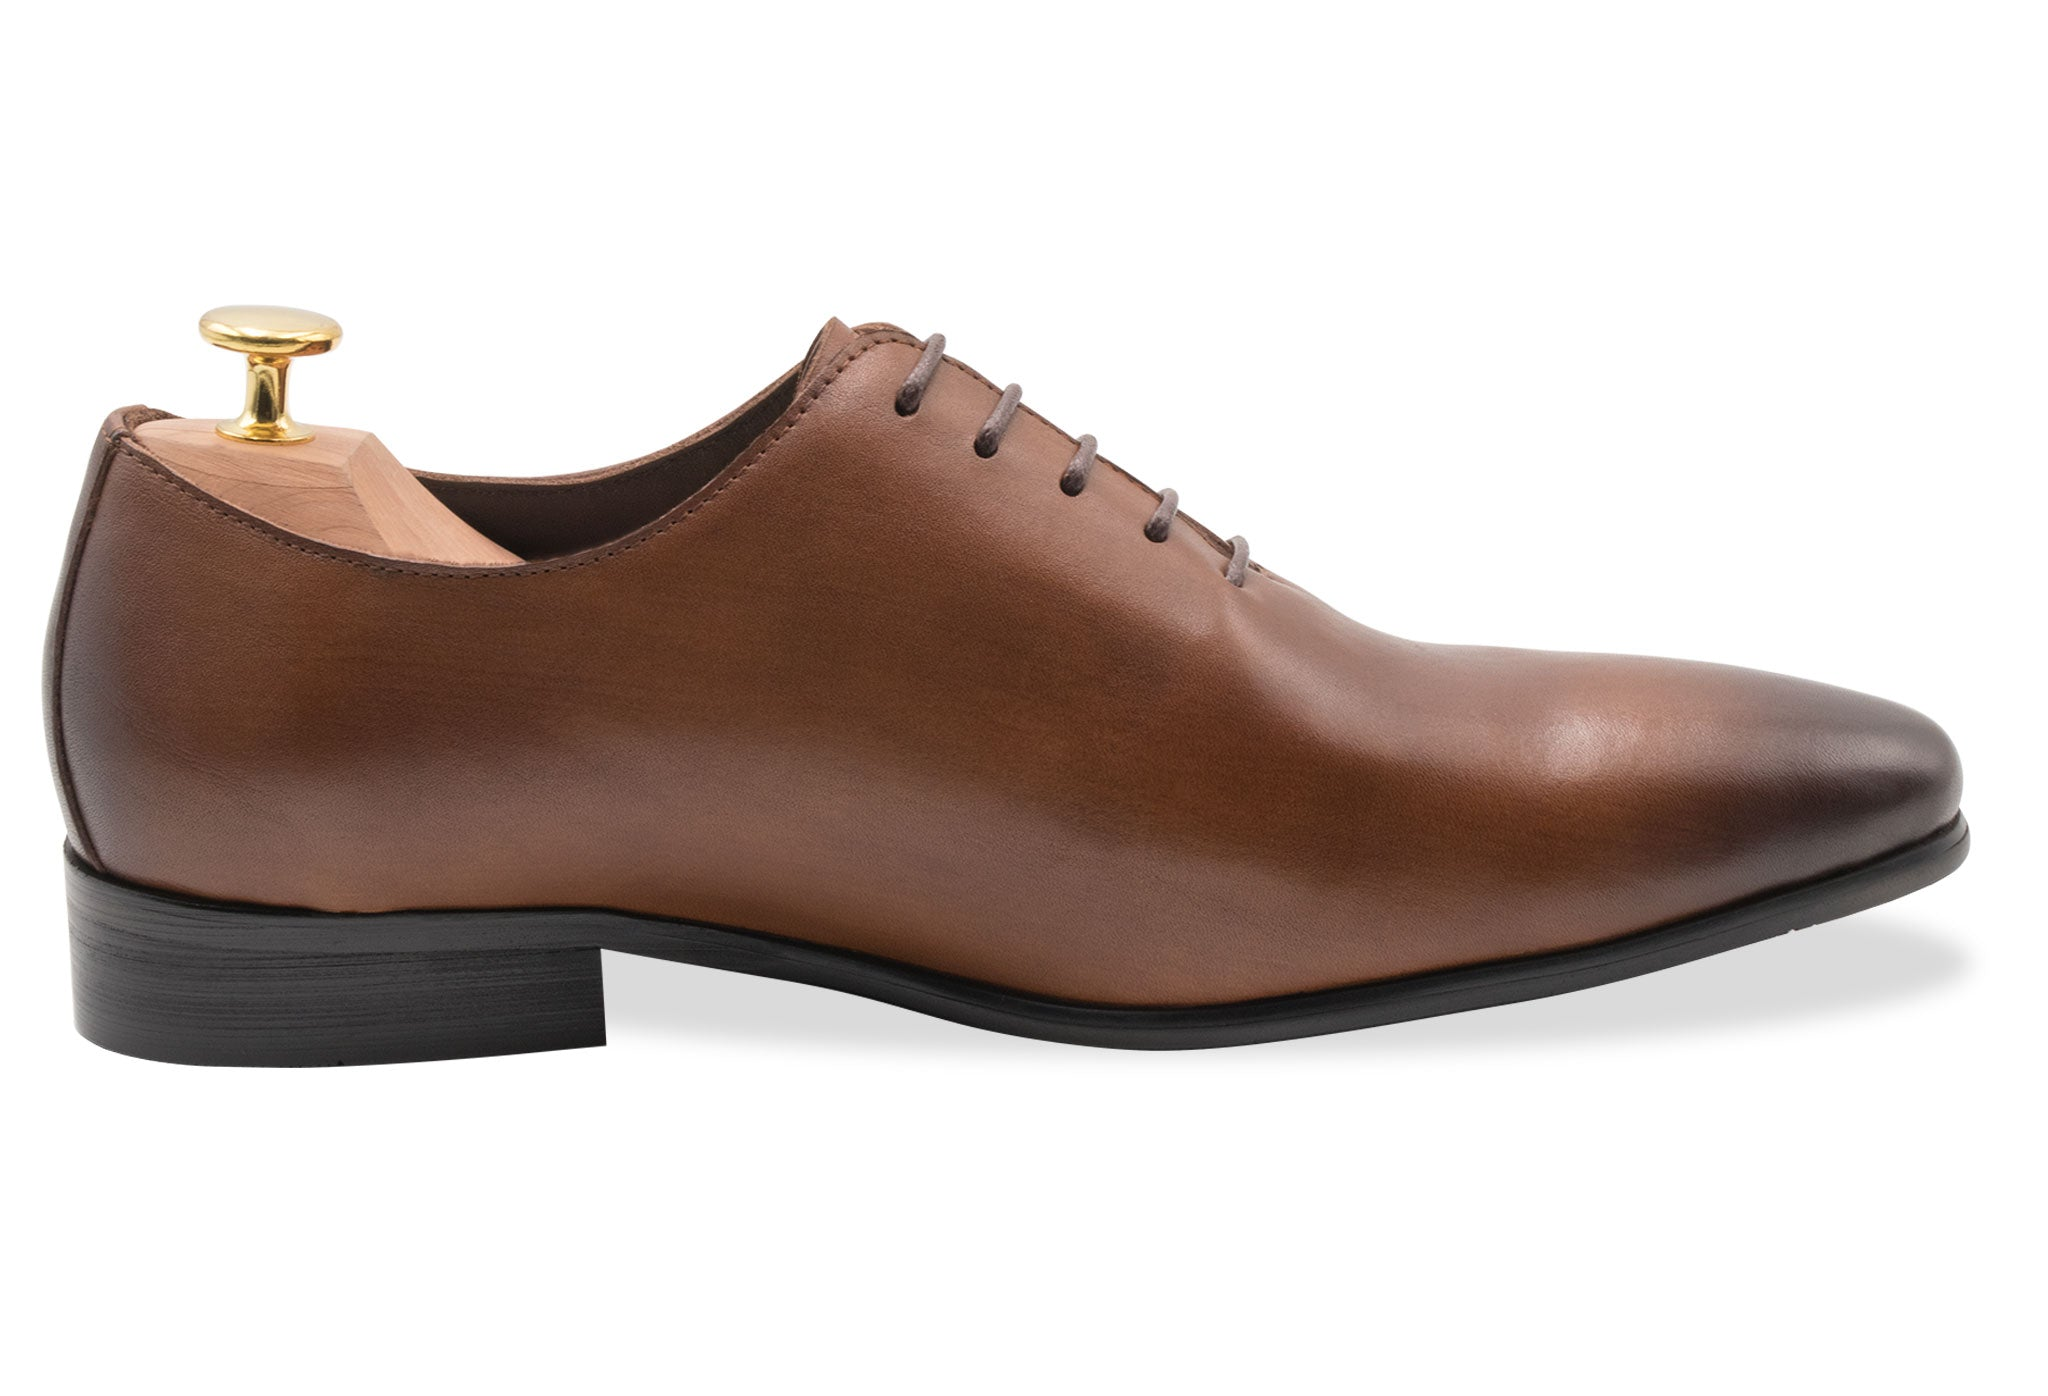 Carlota Wholecut Blake Stitched Chestnut Oxford